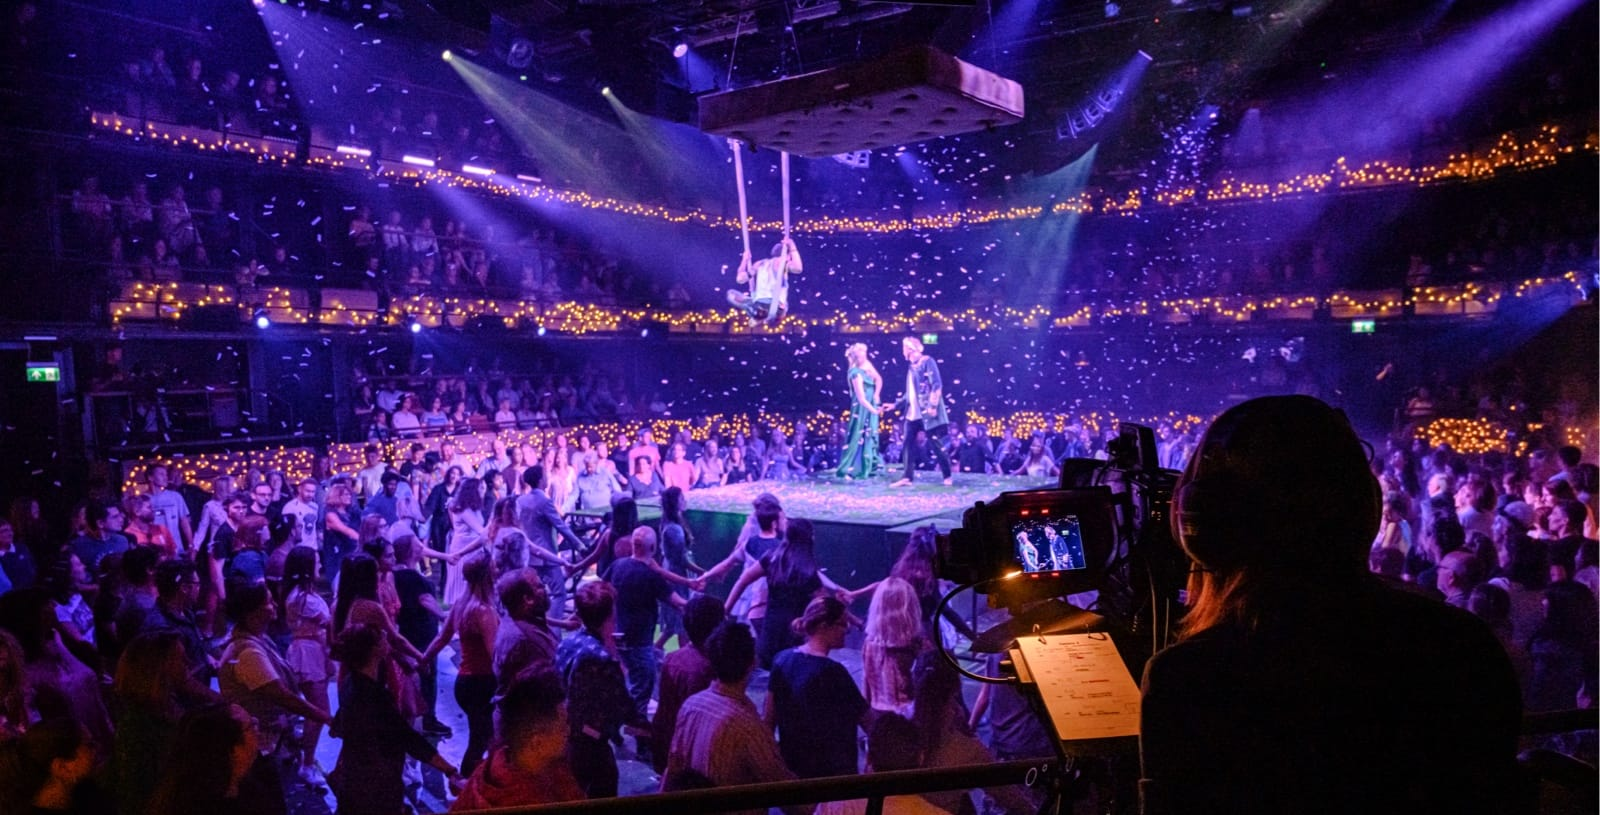 A photograph of the camera rehearsal for Small Island, featuring a camera operators filming three actors standing on stage.